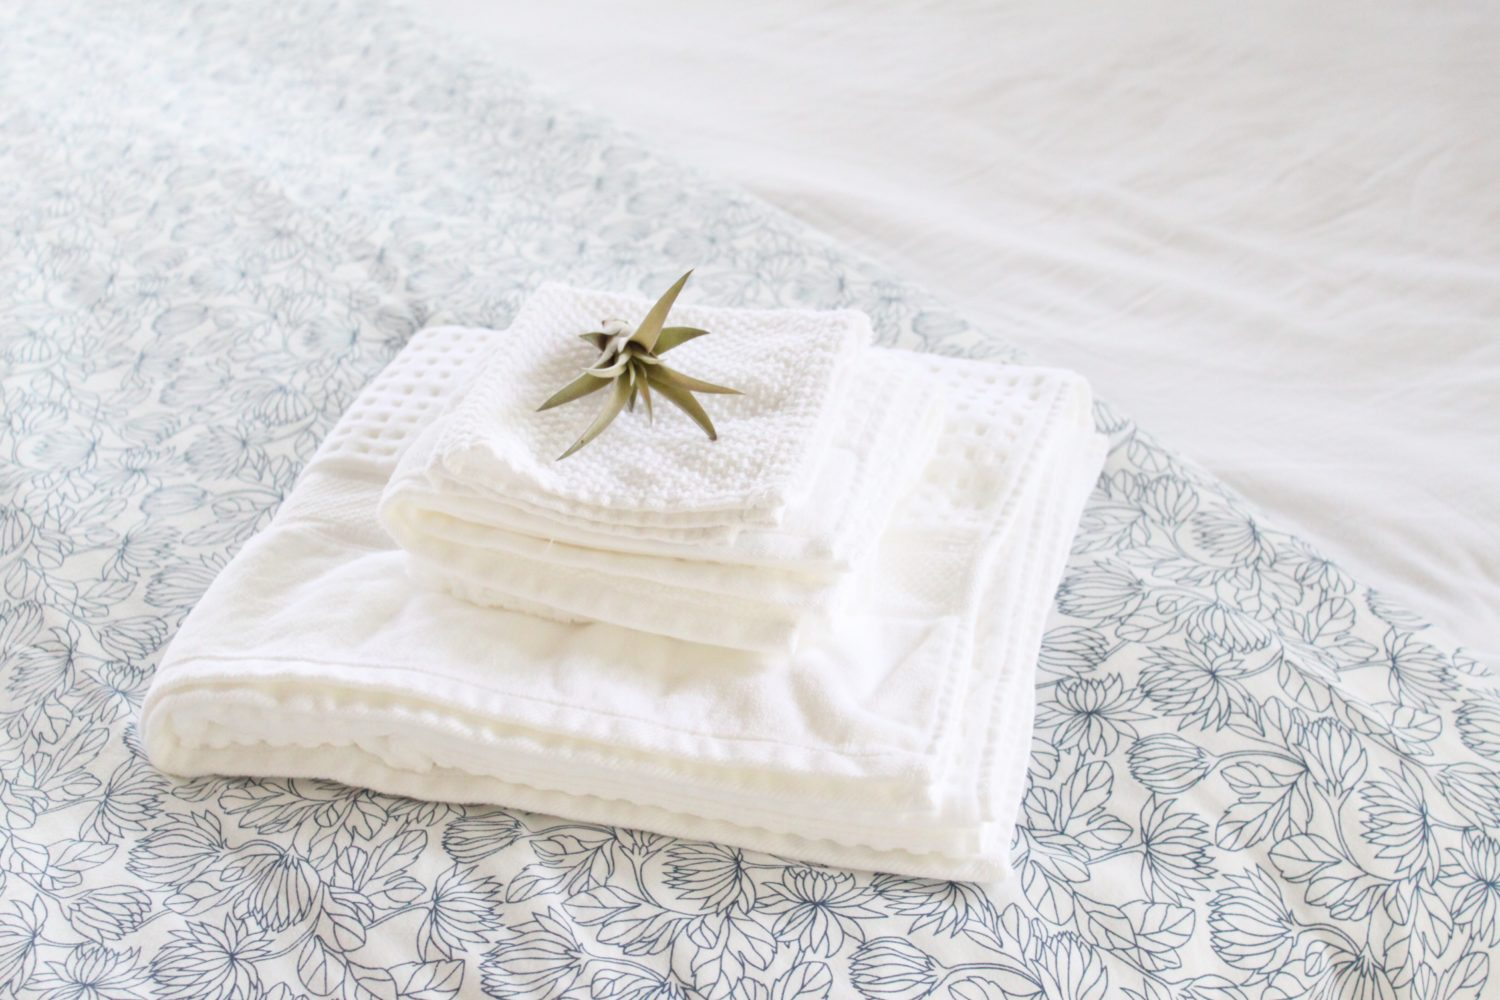 Top 10 Wedding Registry Gifts from Bed Bath & Beyond